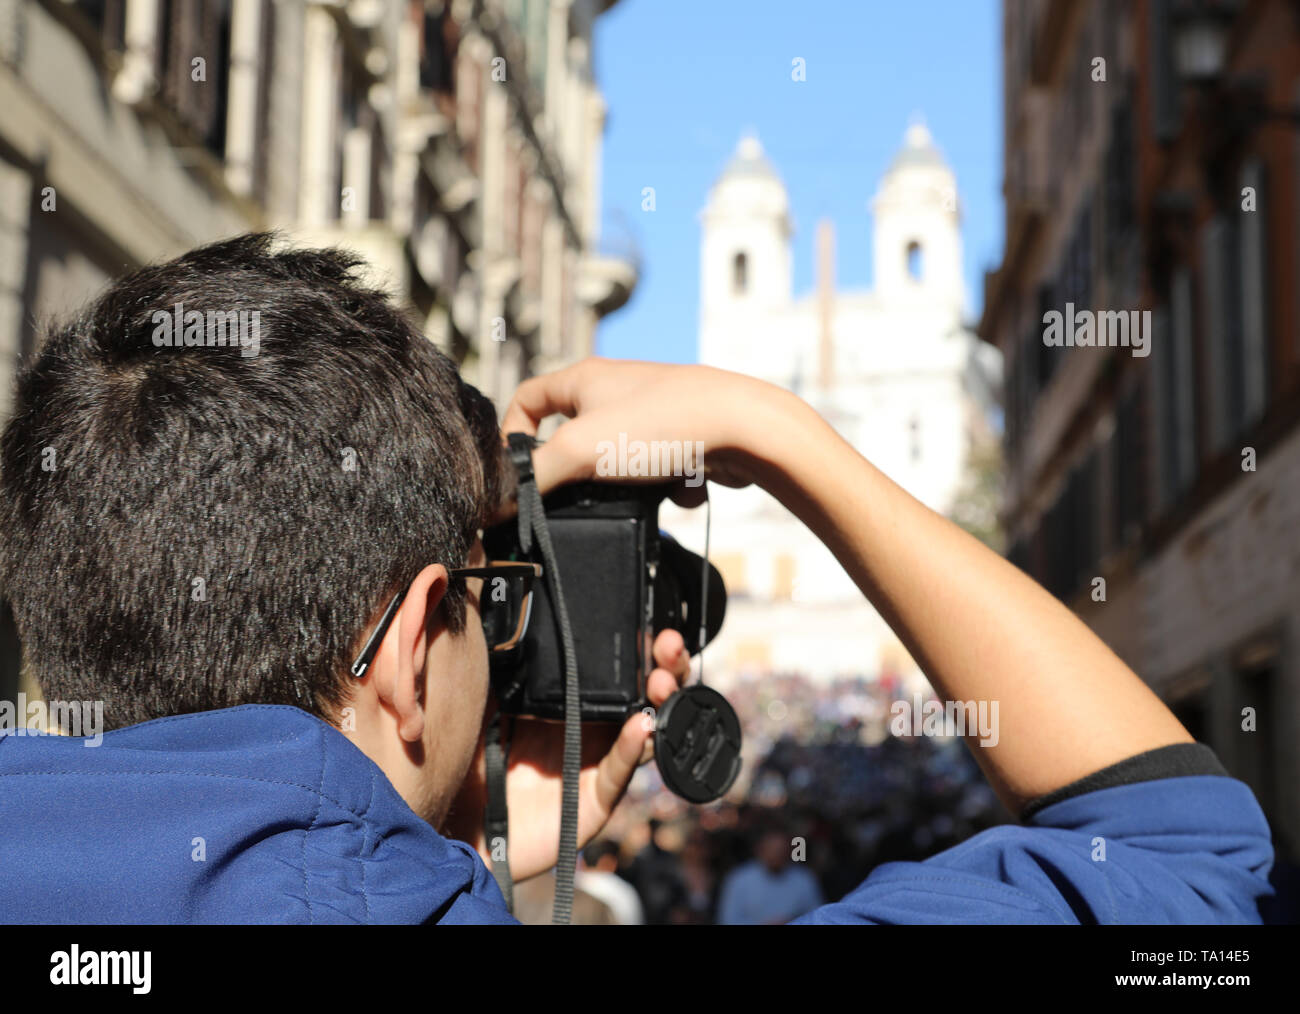 young photographer with digital camera in Via dei Condotti in Rome Italy and the church of the Trinity in the background - Stock Image